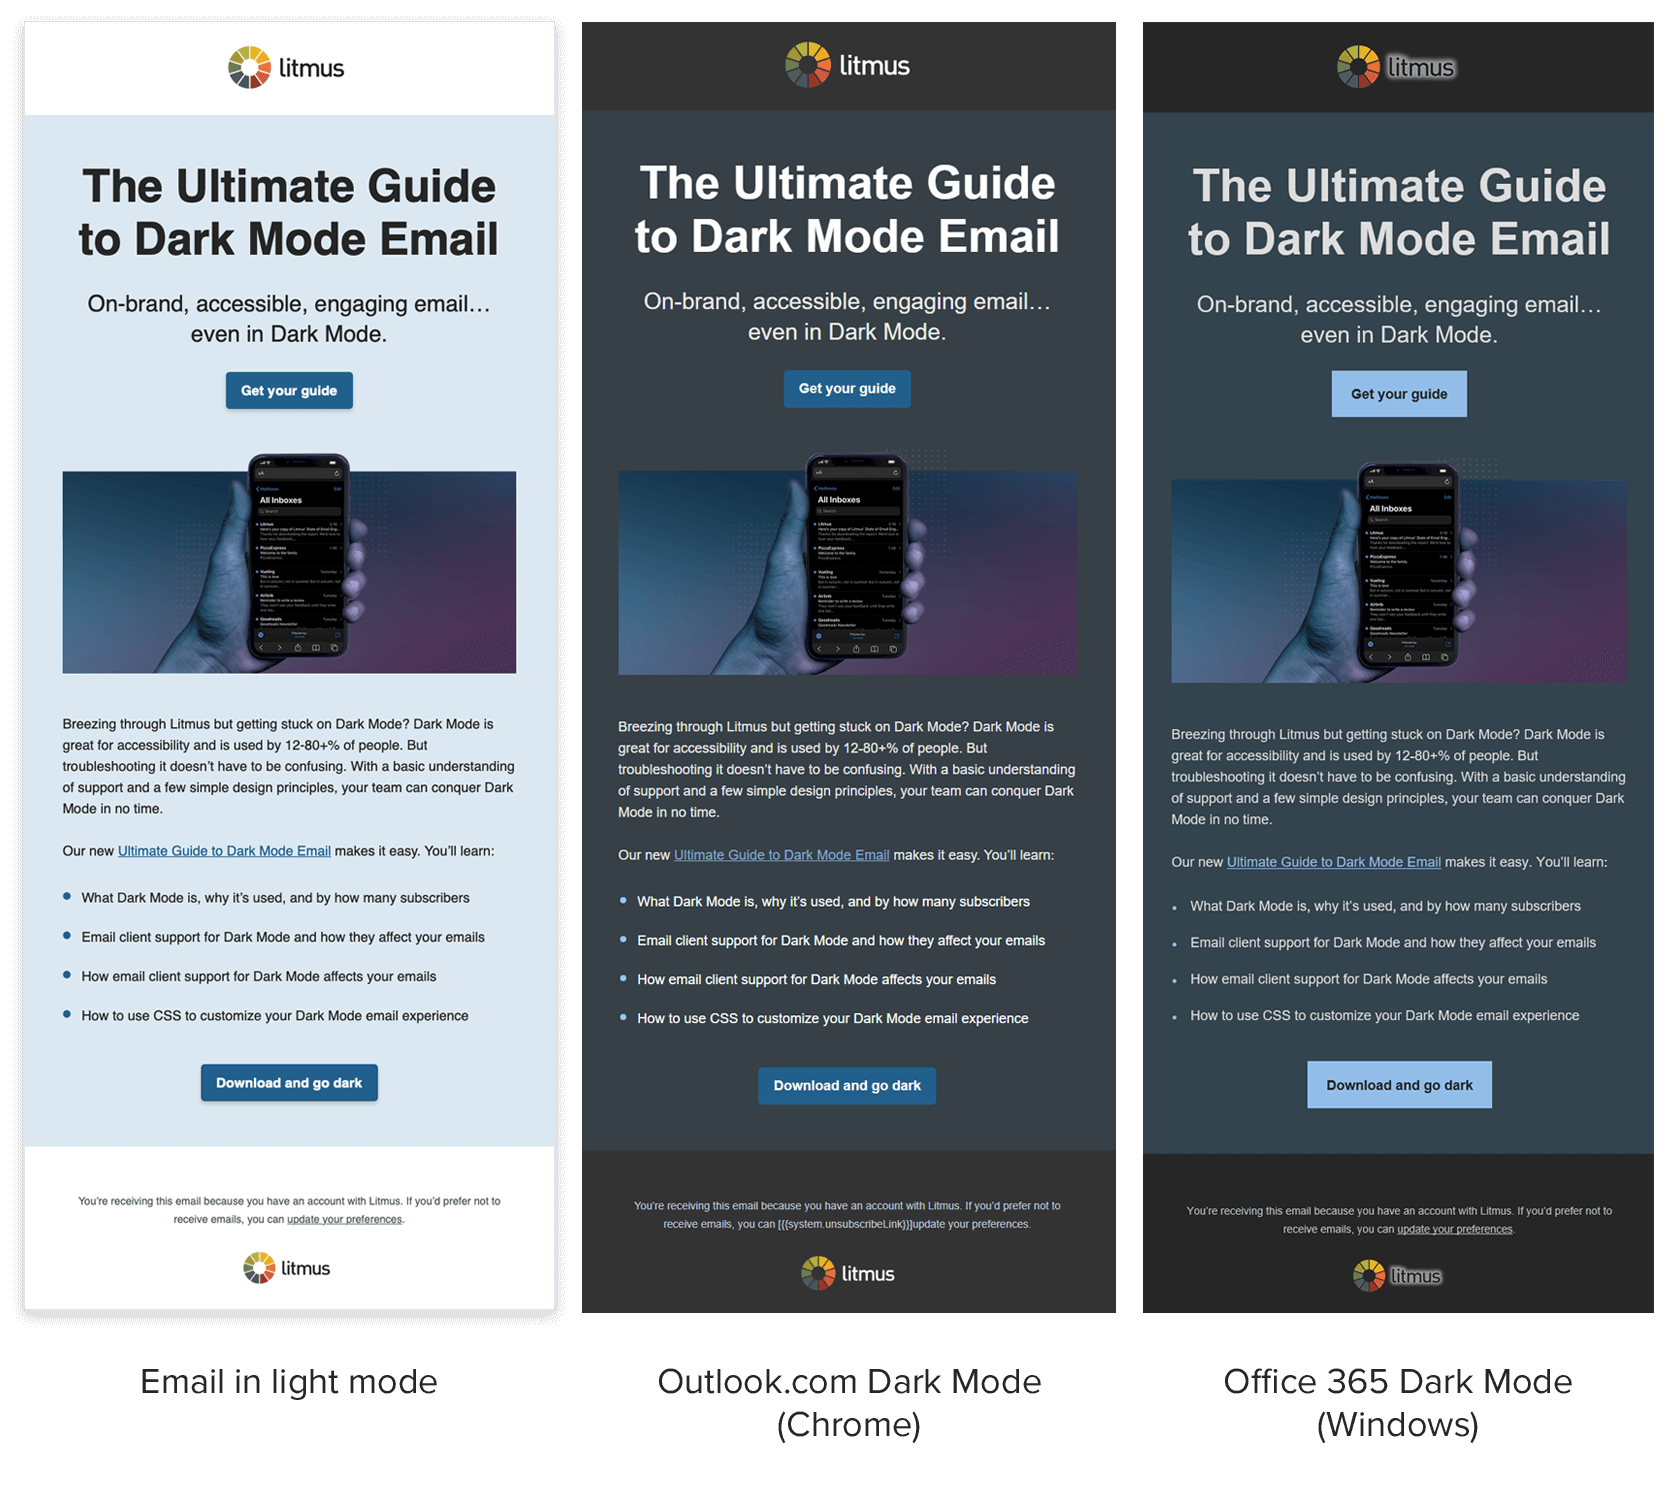 Litmus HTML email examples of background colors in light mode vs dark mode